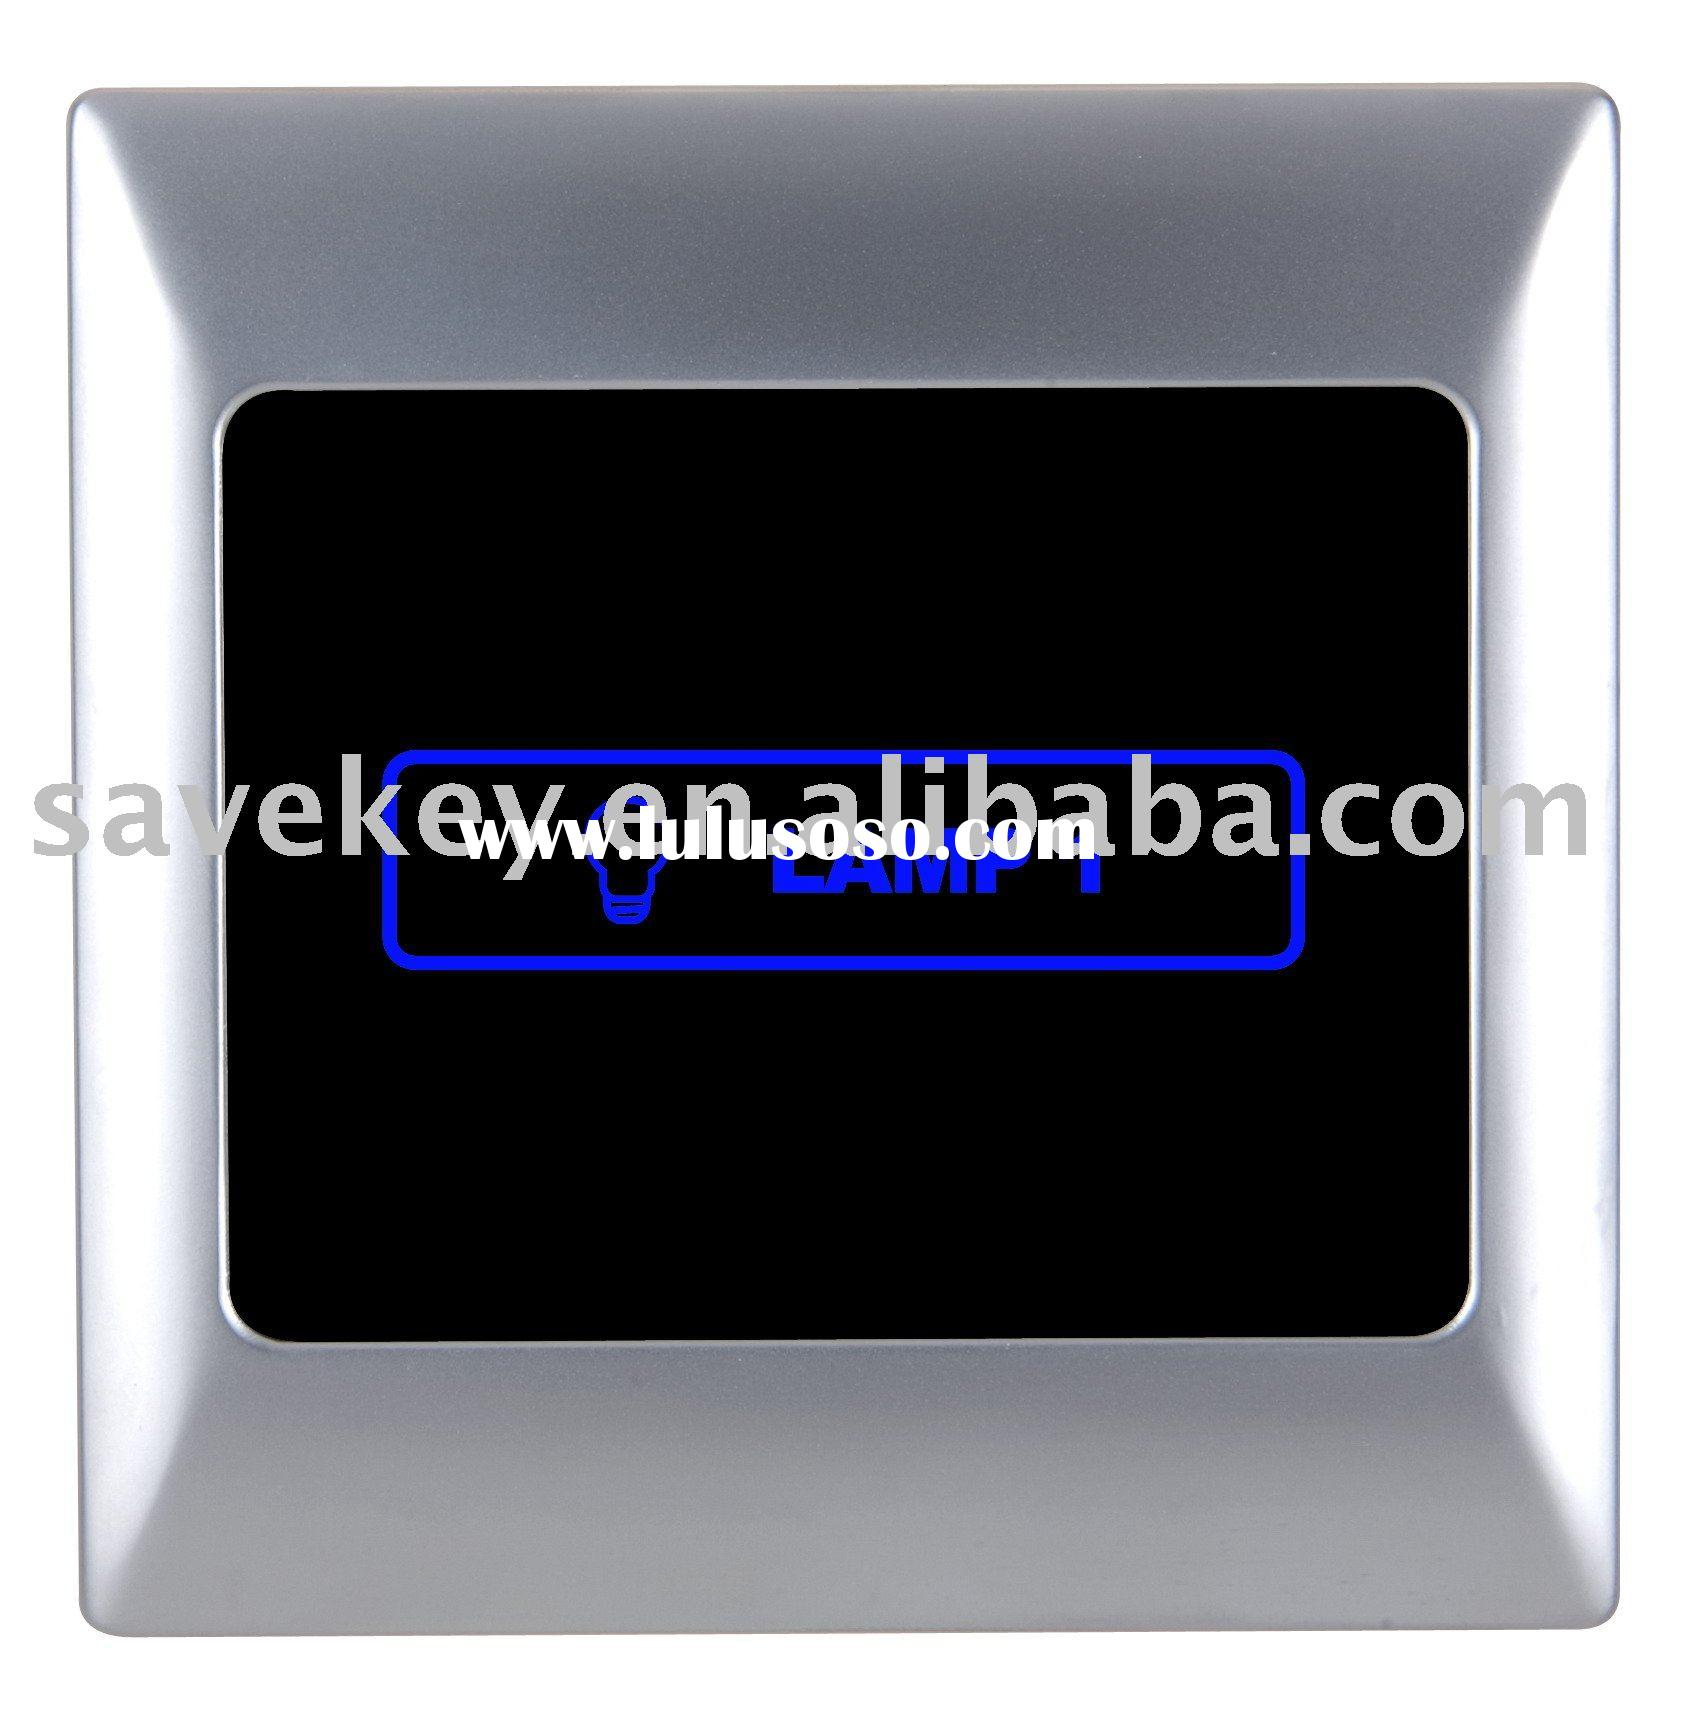 Infrared Remote Control Network Intelligent Lighting Touch Panel Switch Home Automation Samrt Home